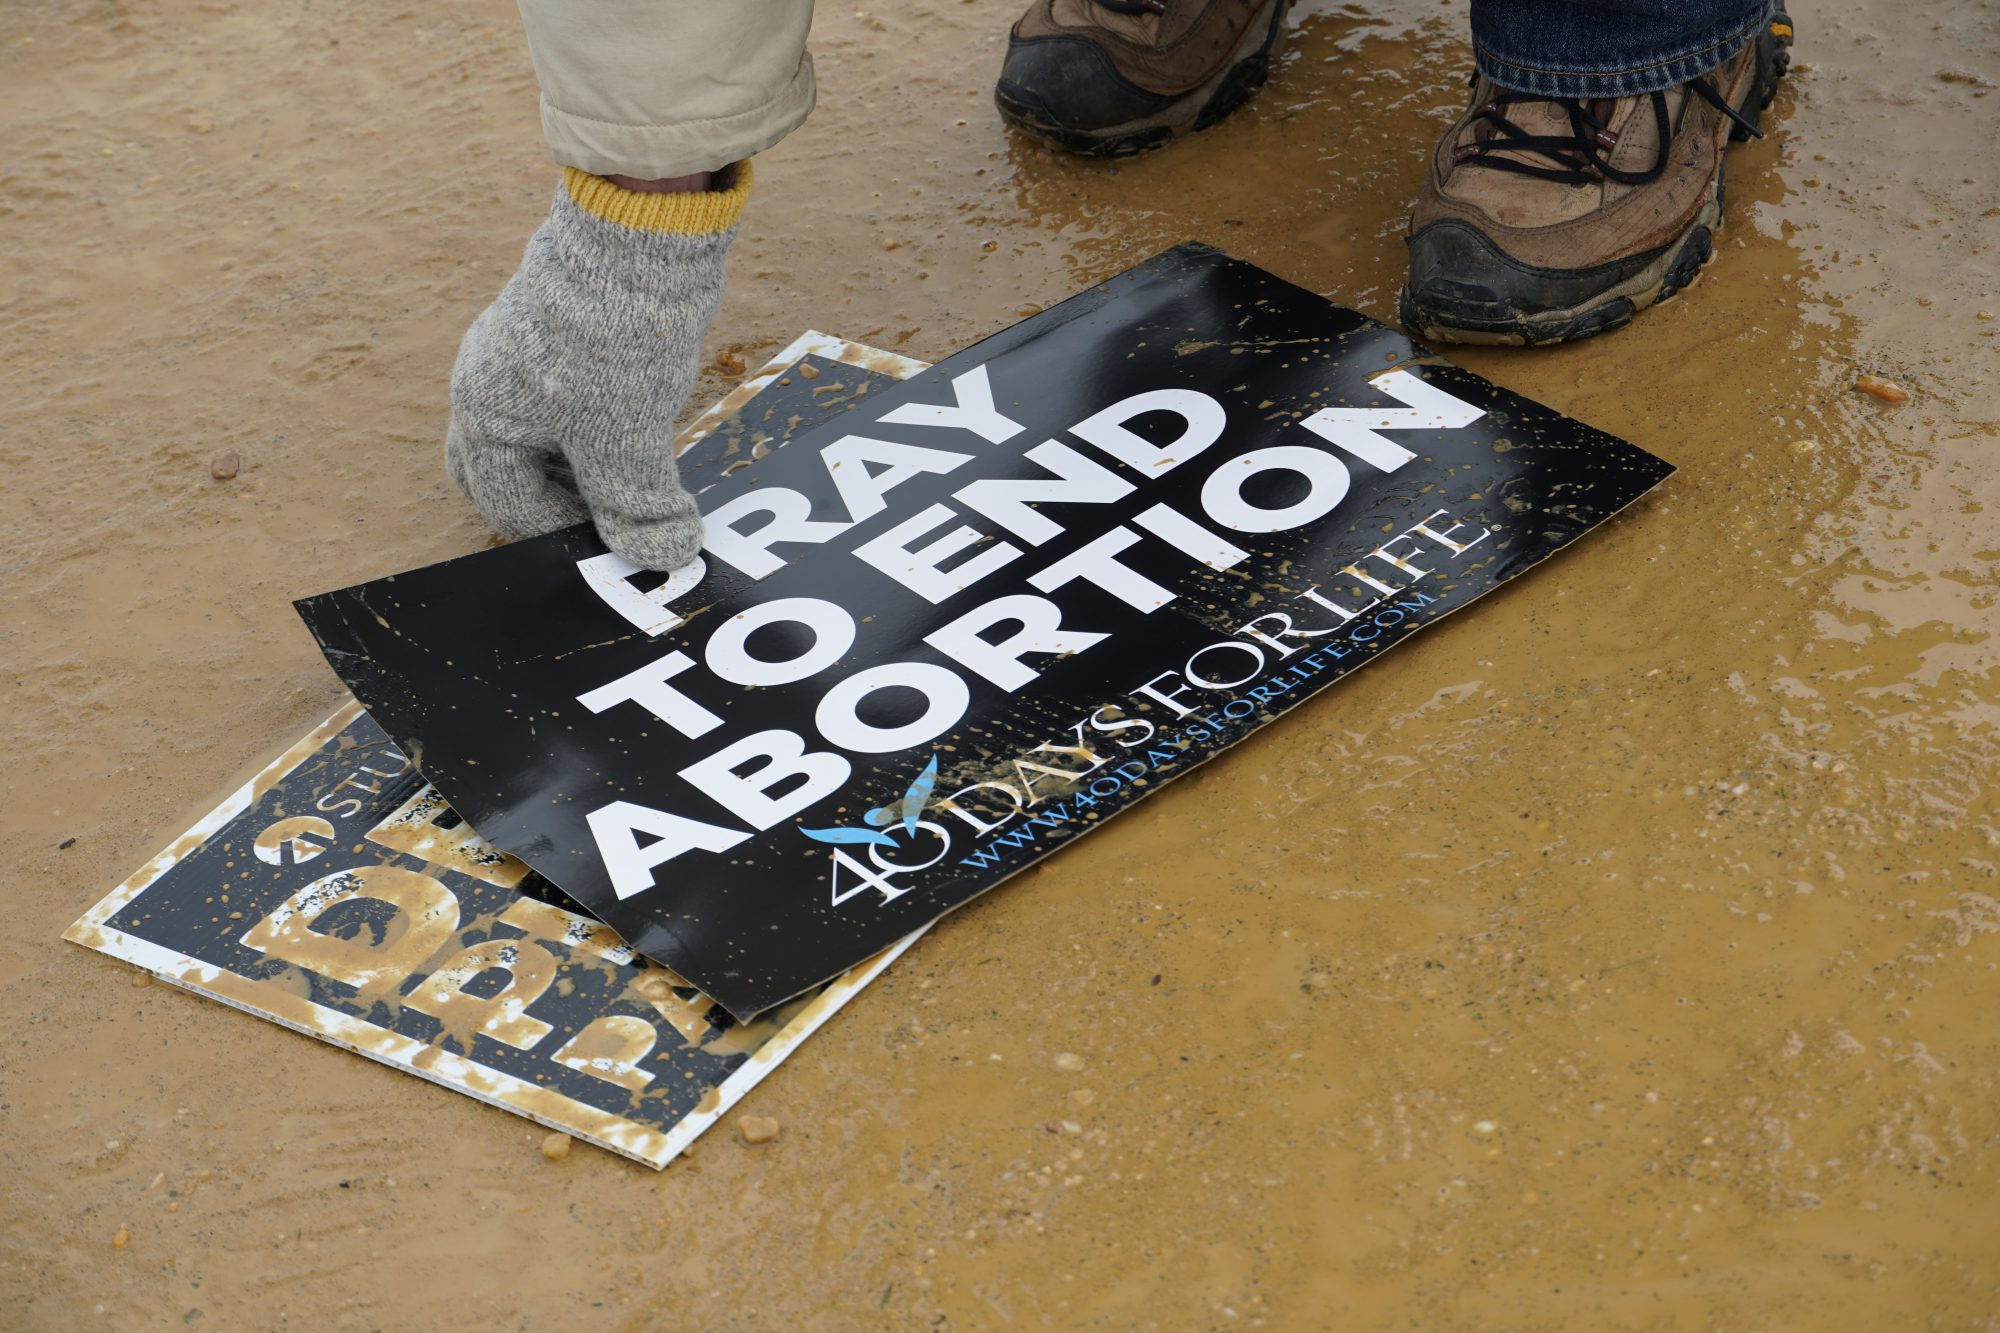 After the march, volunteers picked up anti-abortion signs that were dropped. (Ester Wells/MNS)